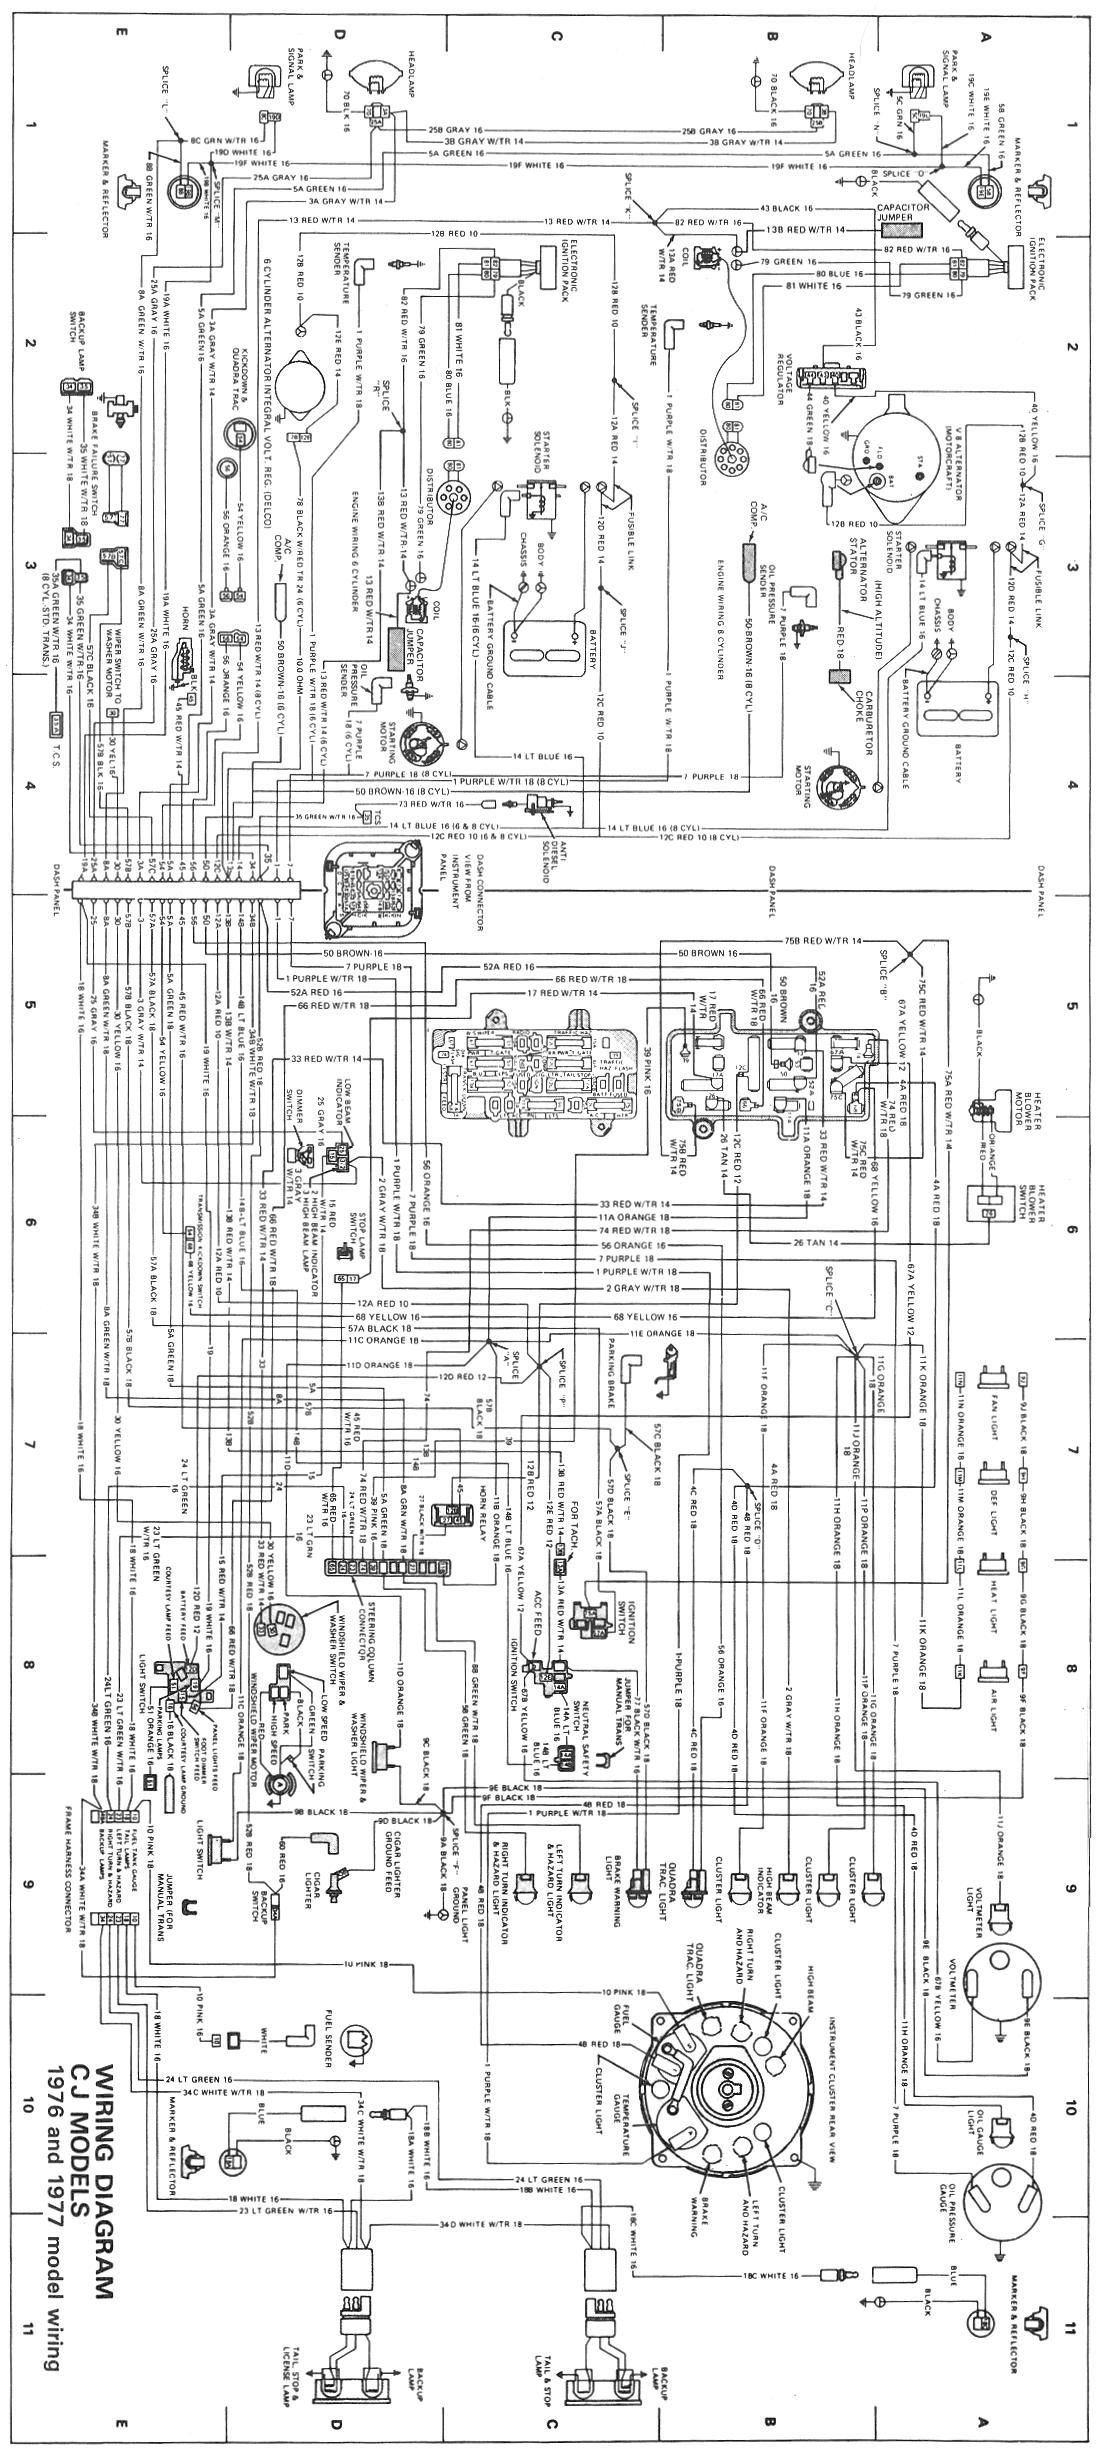 Jeep Wiring Diagrams 1976 And 1977 Cj Jeep Wiring Pinterest 2010 Jeep  Liberty Diagram Jeep Engineering Diagram